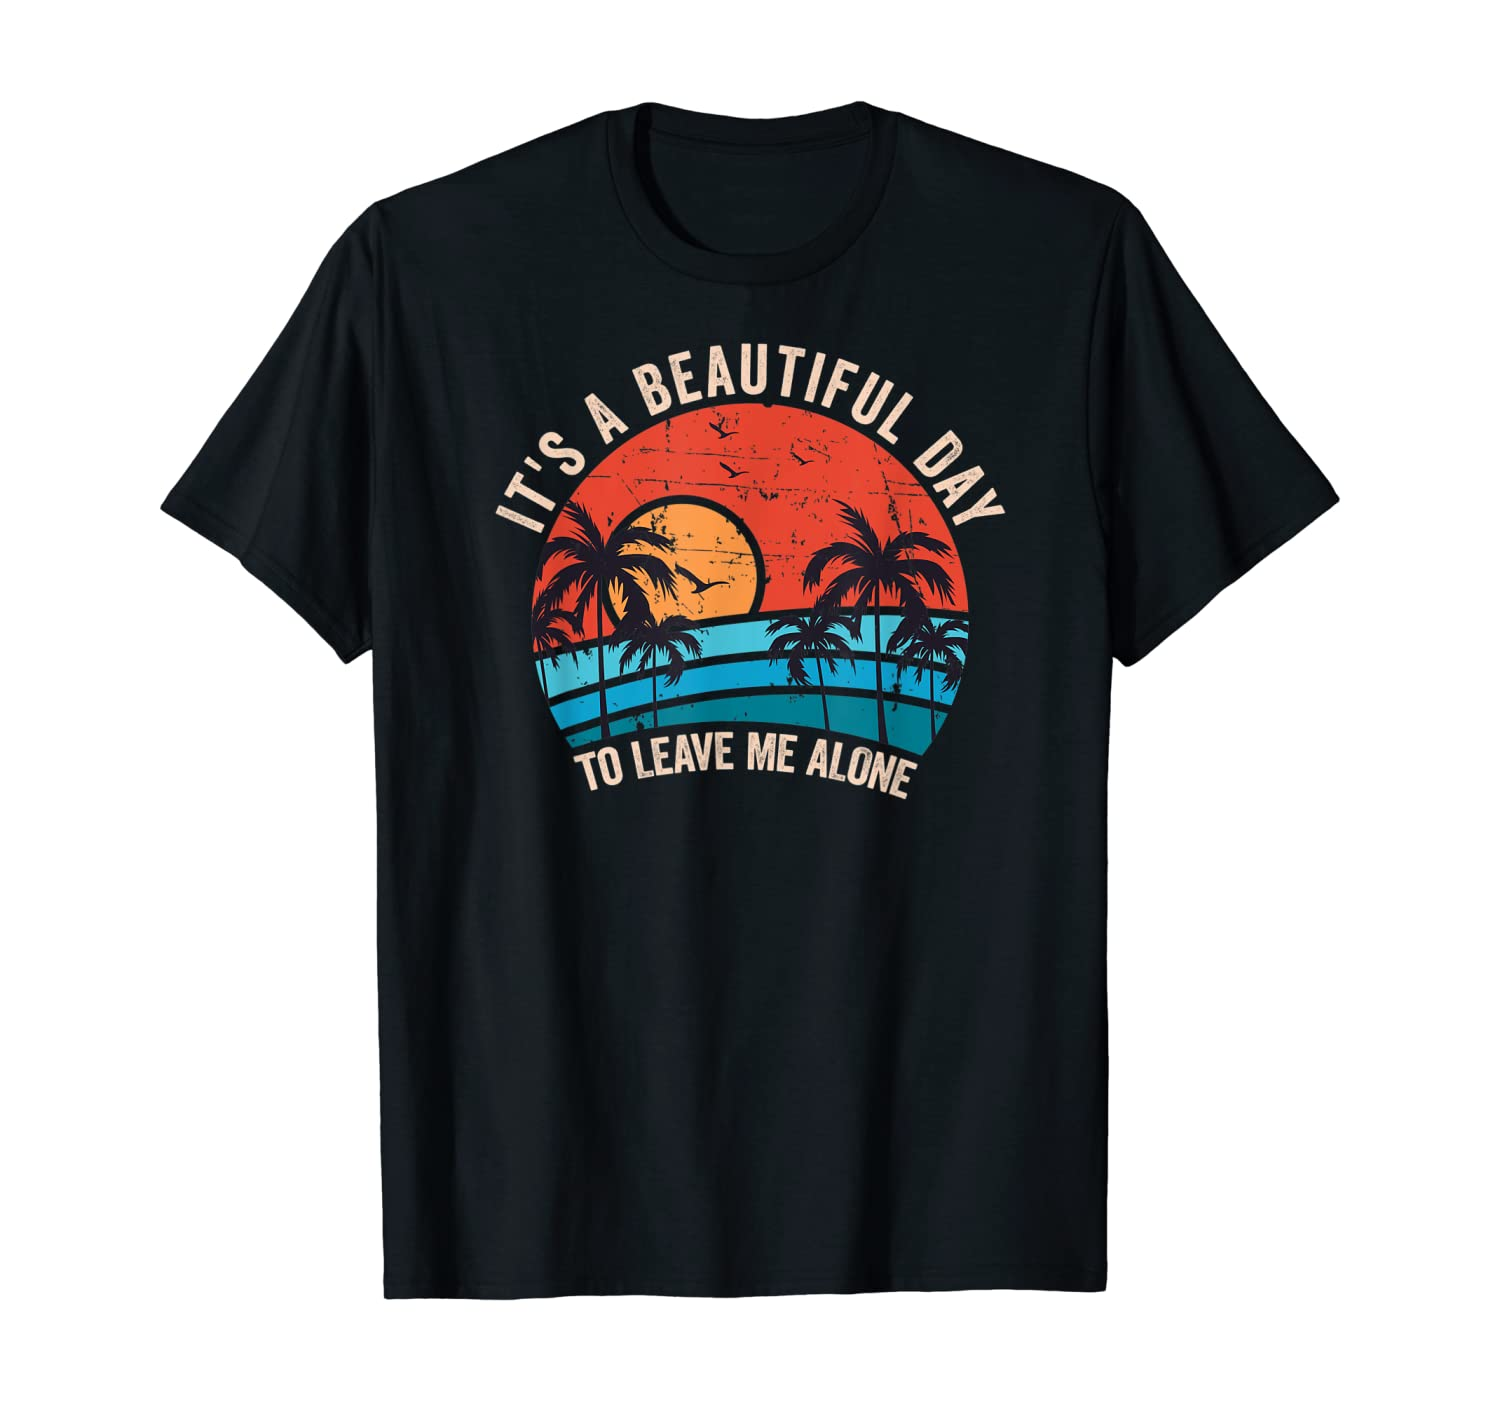 It's A Beautiful Day To Leave Me Alone, Funny Anti Social T-Shirt